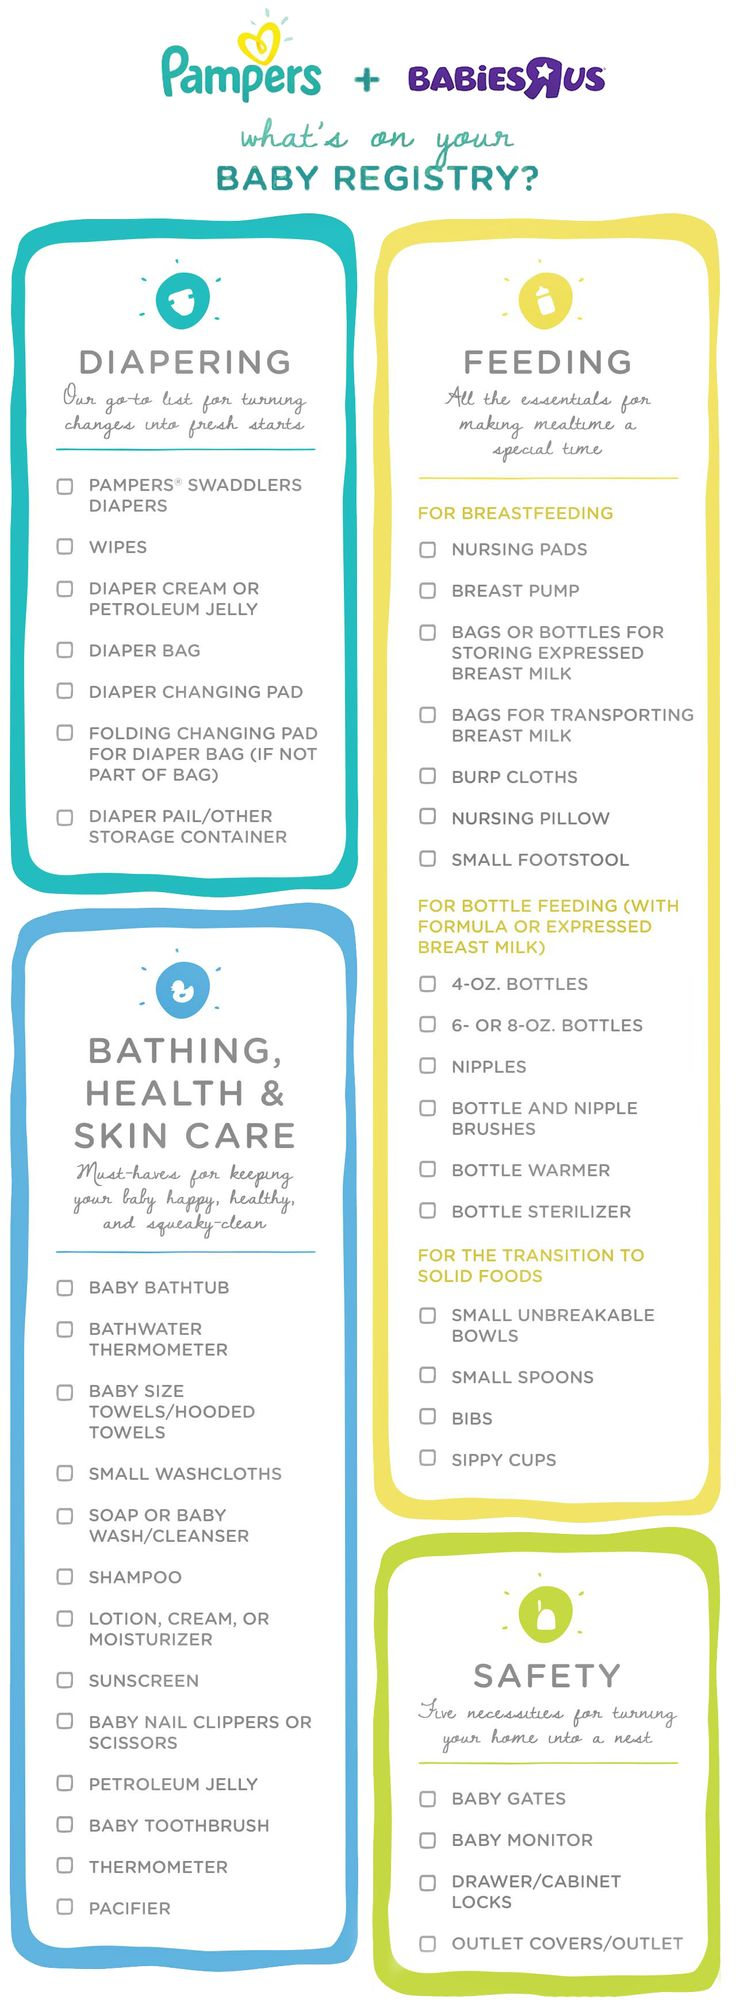 Make sure you have everything you need for your new baby with these helpful registry checklists. From diapering and baby care essentials to safety gear for childproofing the house—these lists of baby must-haves may help you feel more prepared to bring home your little one, and help your friends and family discover great baby shower gift ideas.